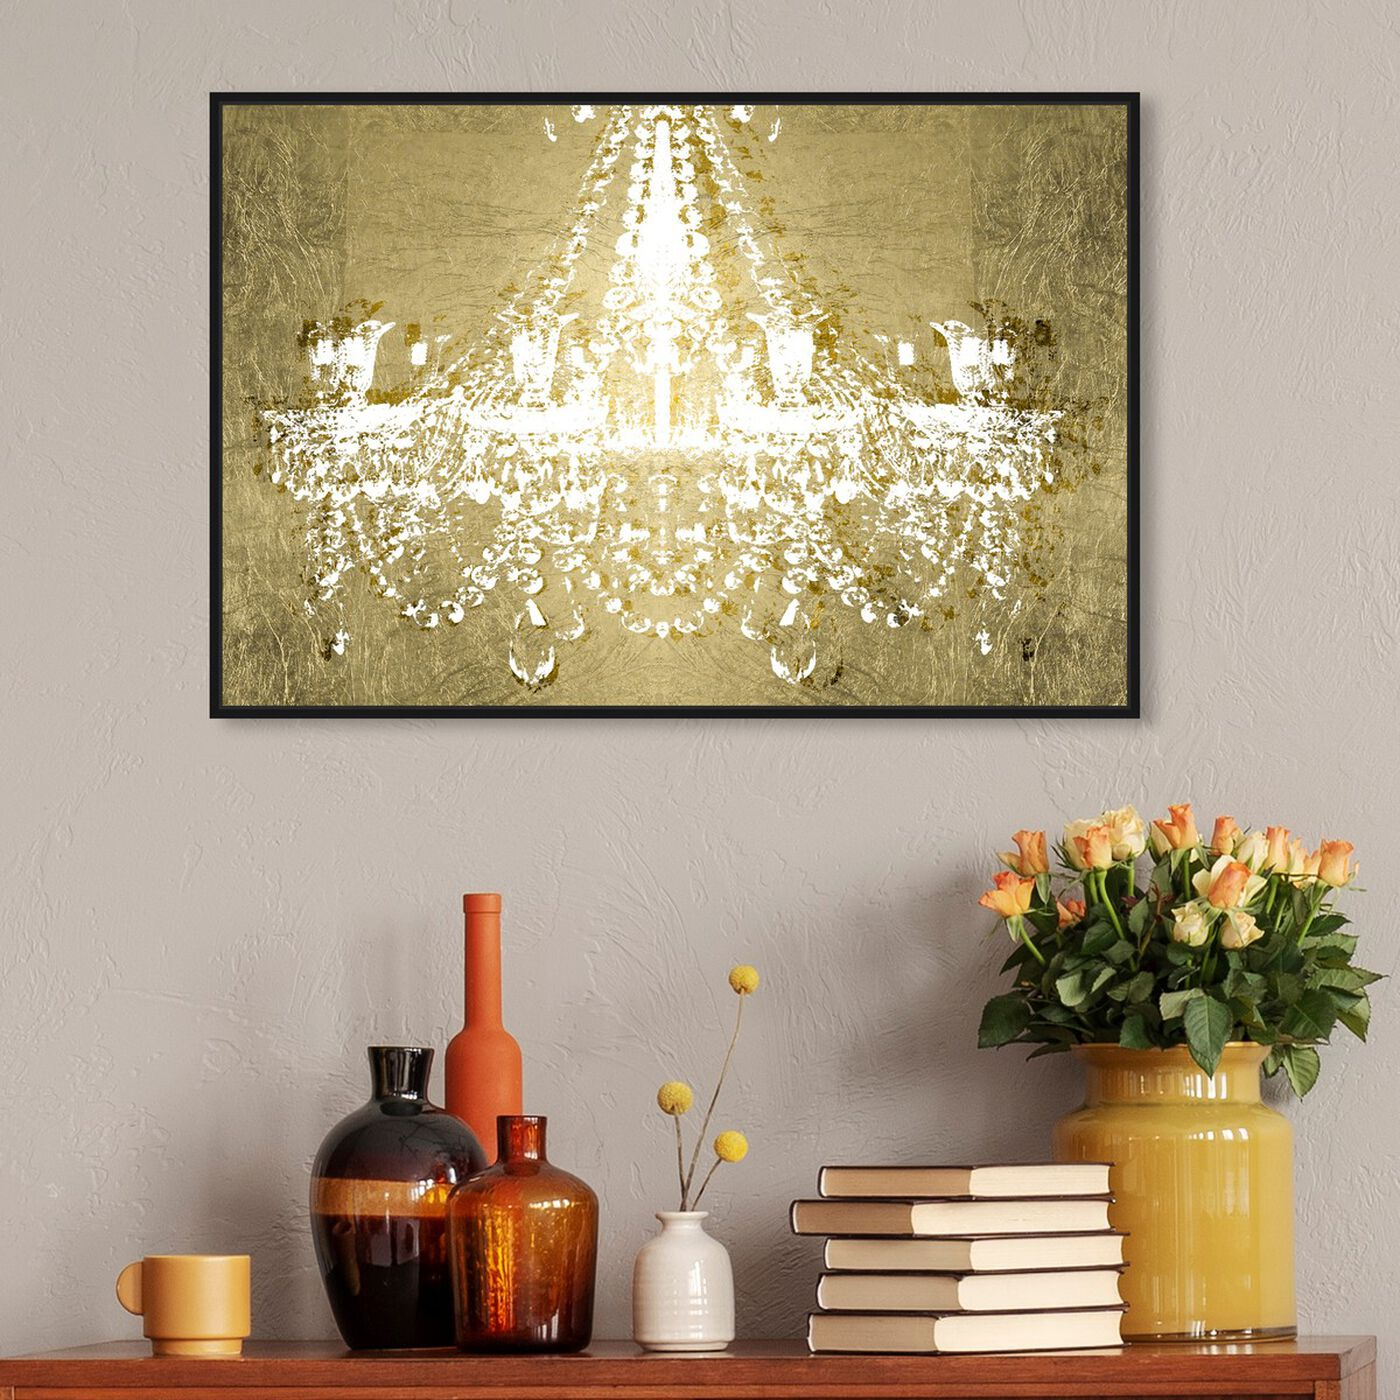 Hanging view of Dramatic Entrance GOLD featuring fashion and glam and chandeliers art.